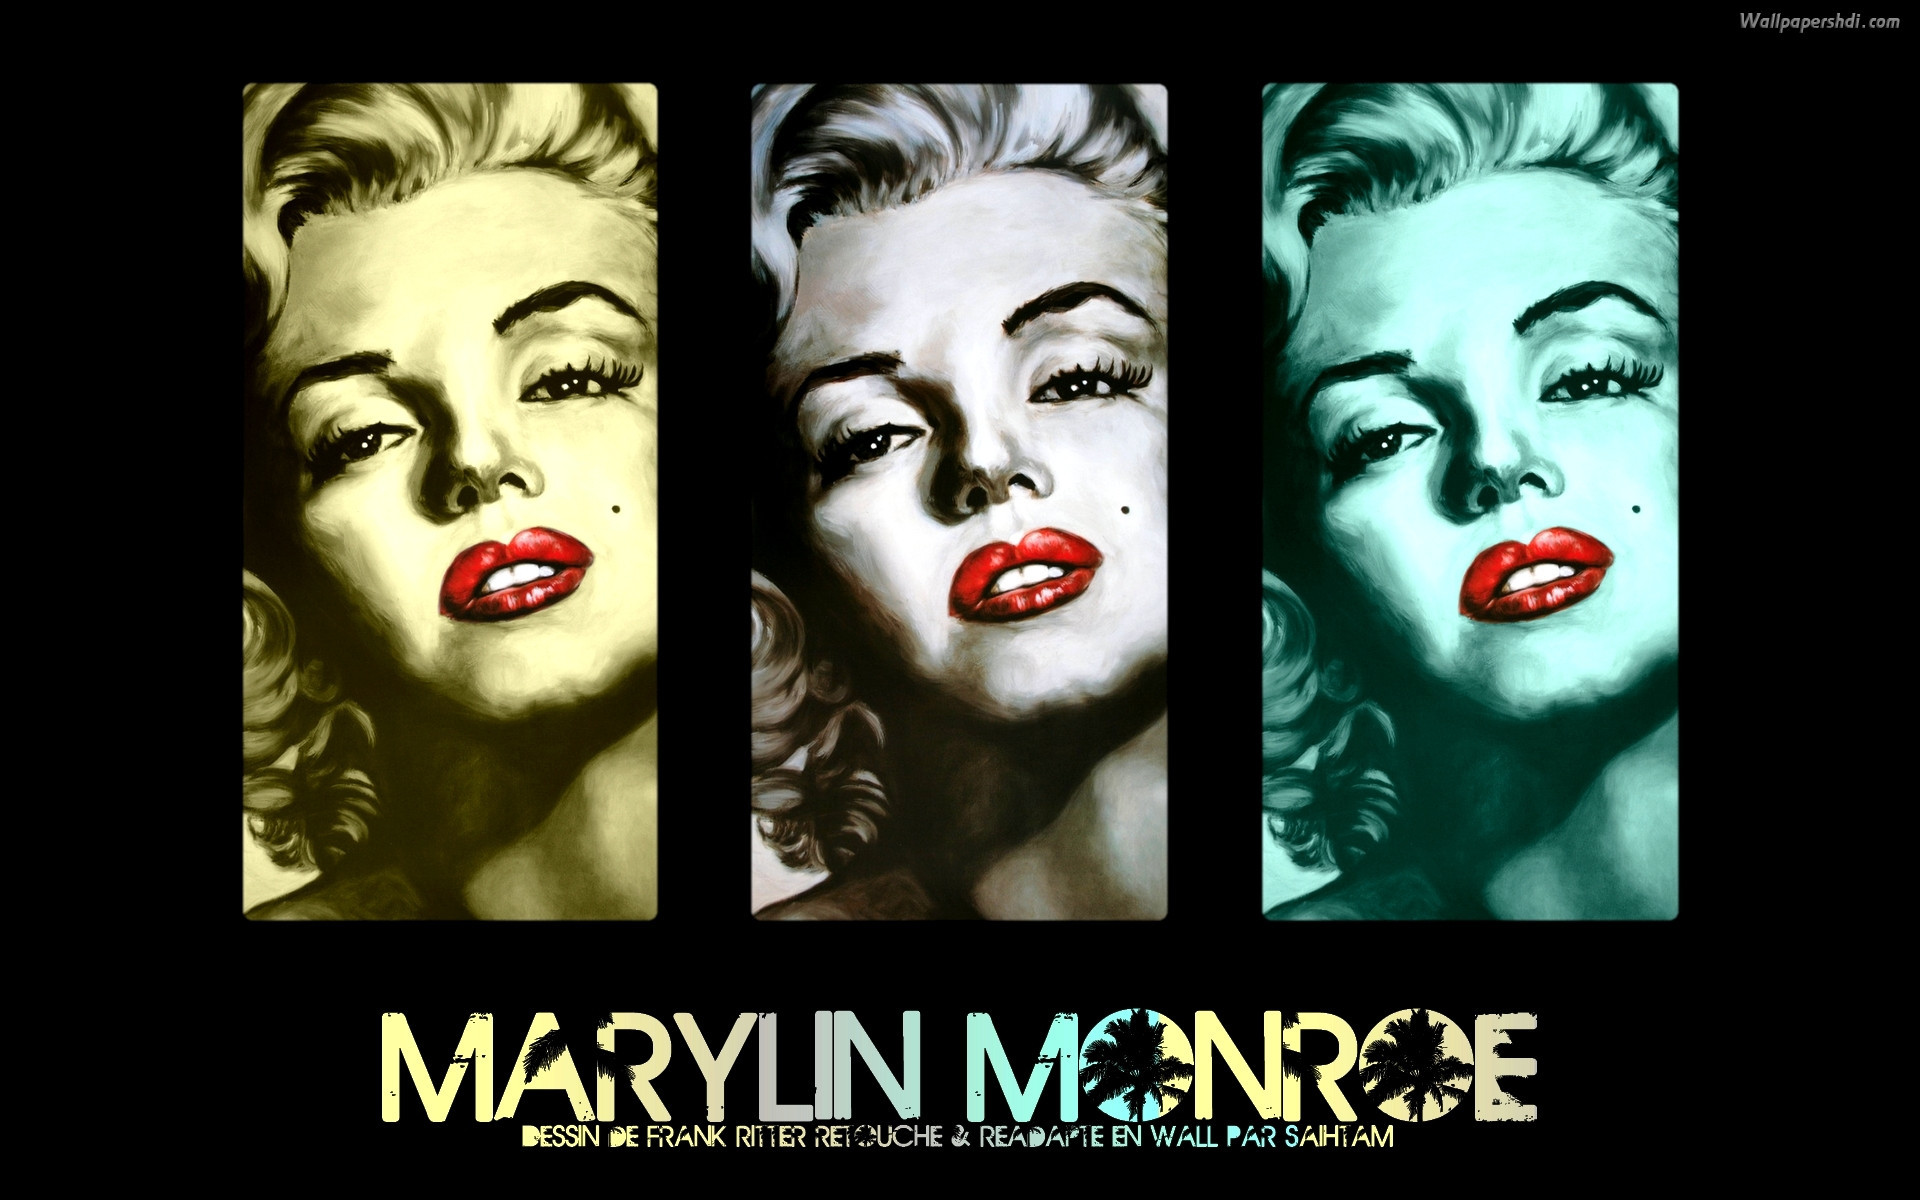 Marilyn monroe wallpapers 72 images 1920x1200 marilyn monroe wallpaper voltagebd Image collections